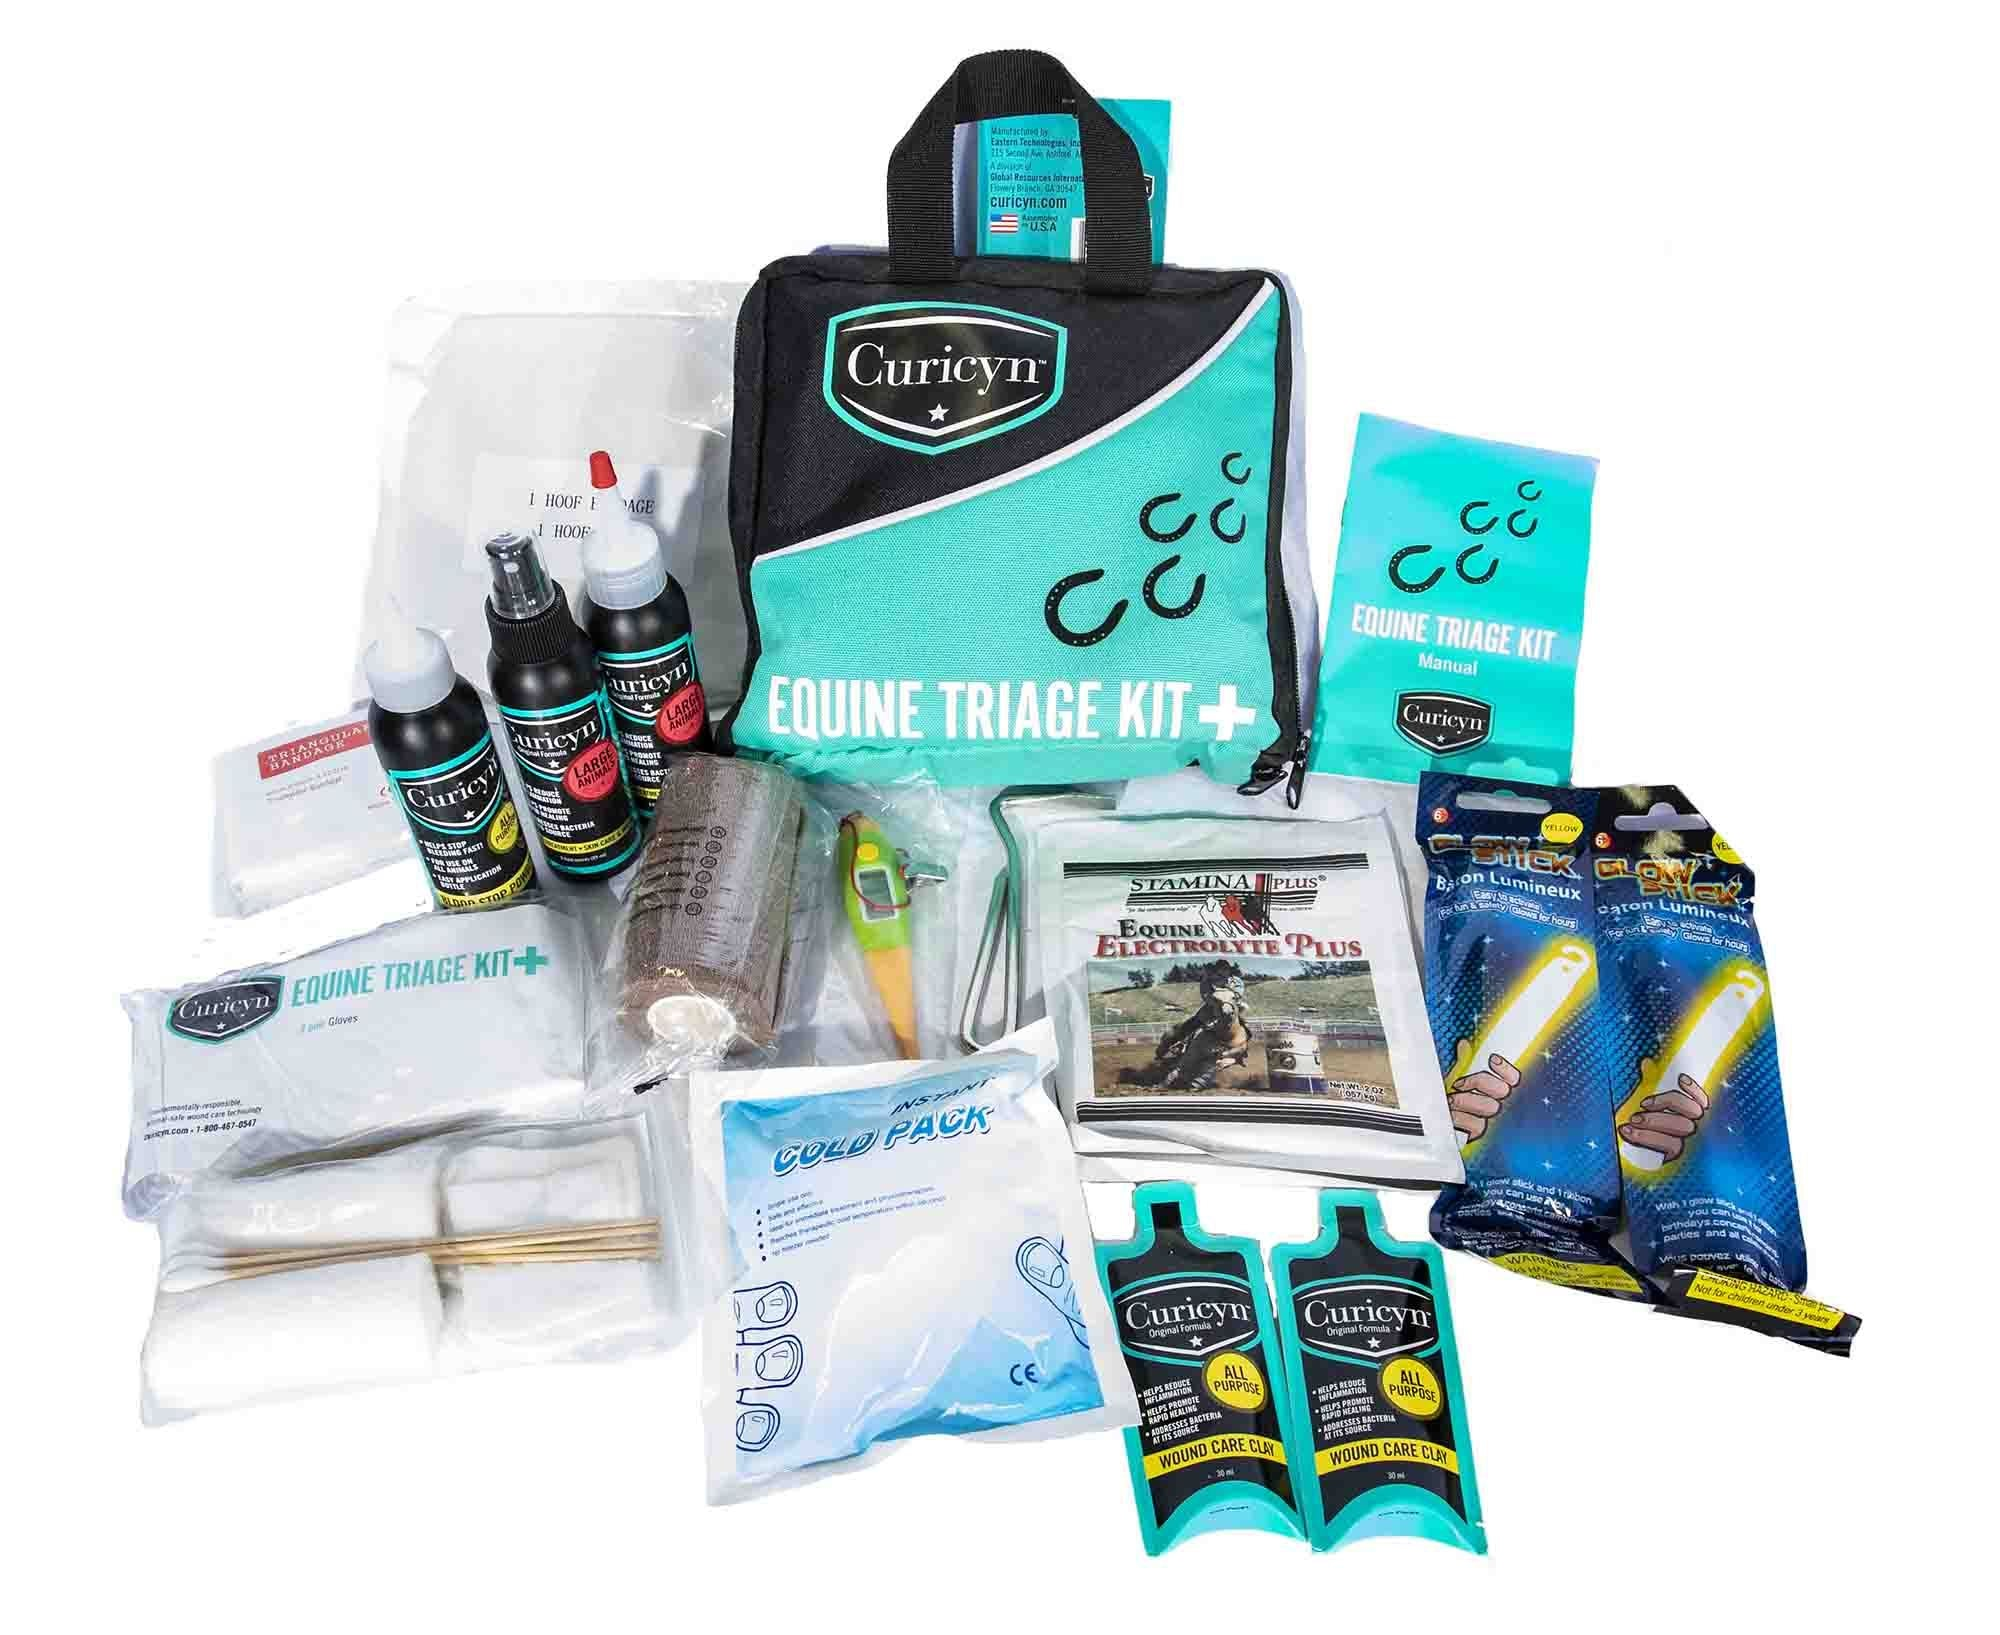 Curicyn's Equine Triage Kit - Animal Health Express